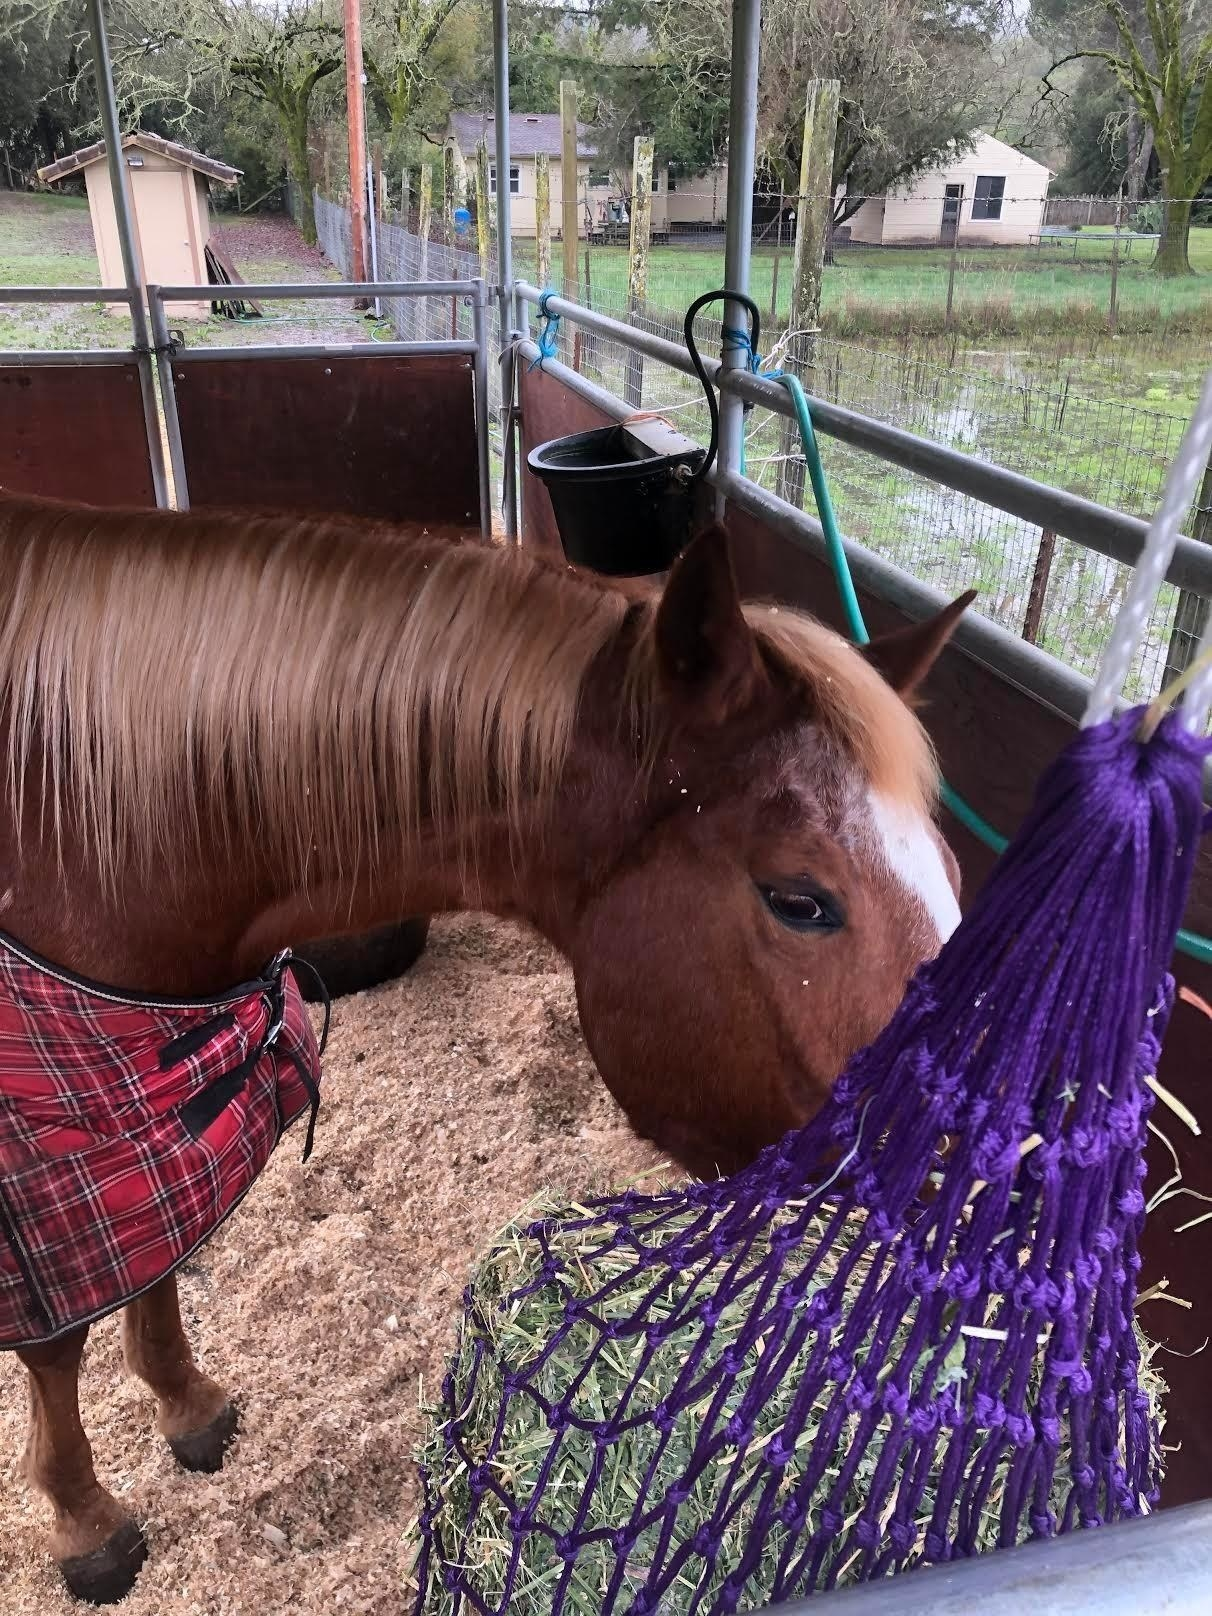 A horse eats from the net